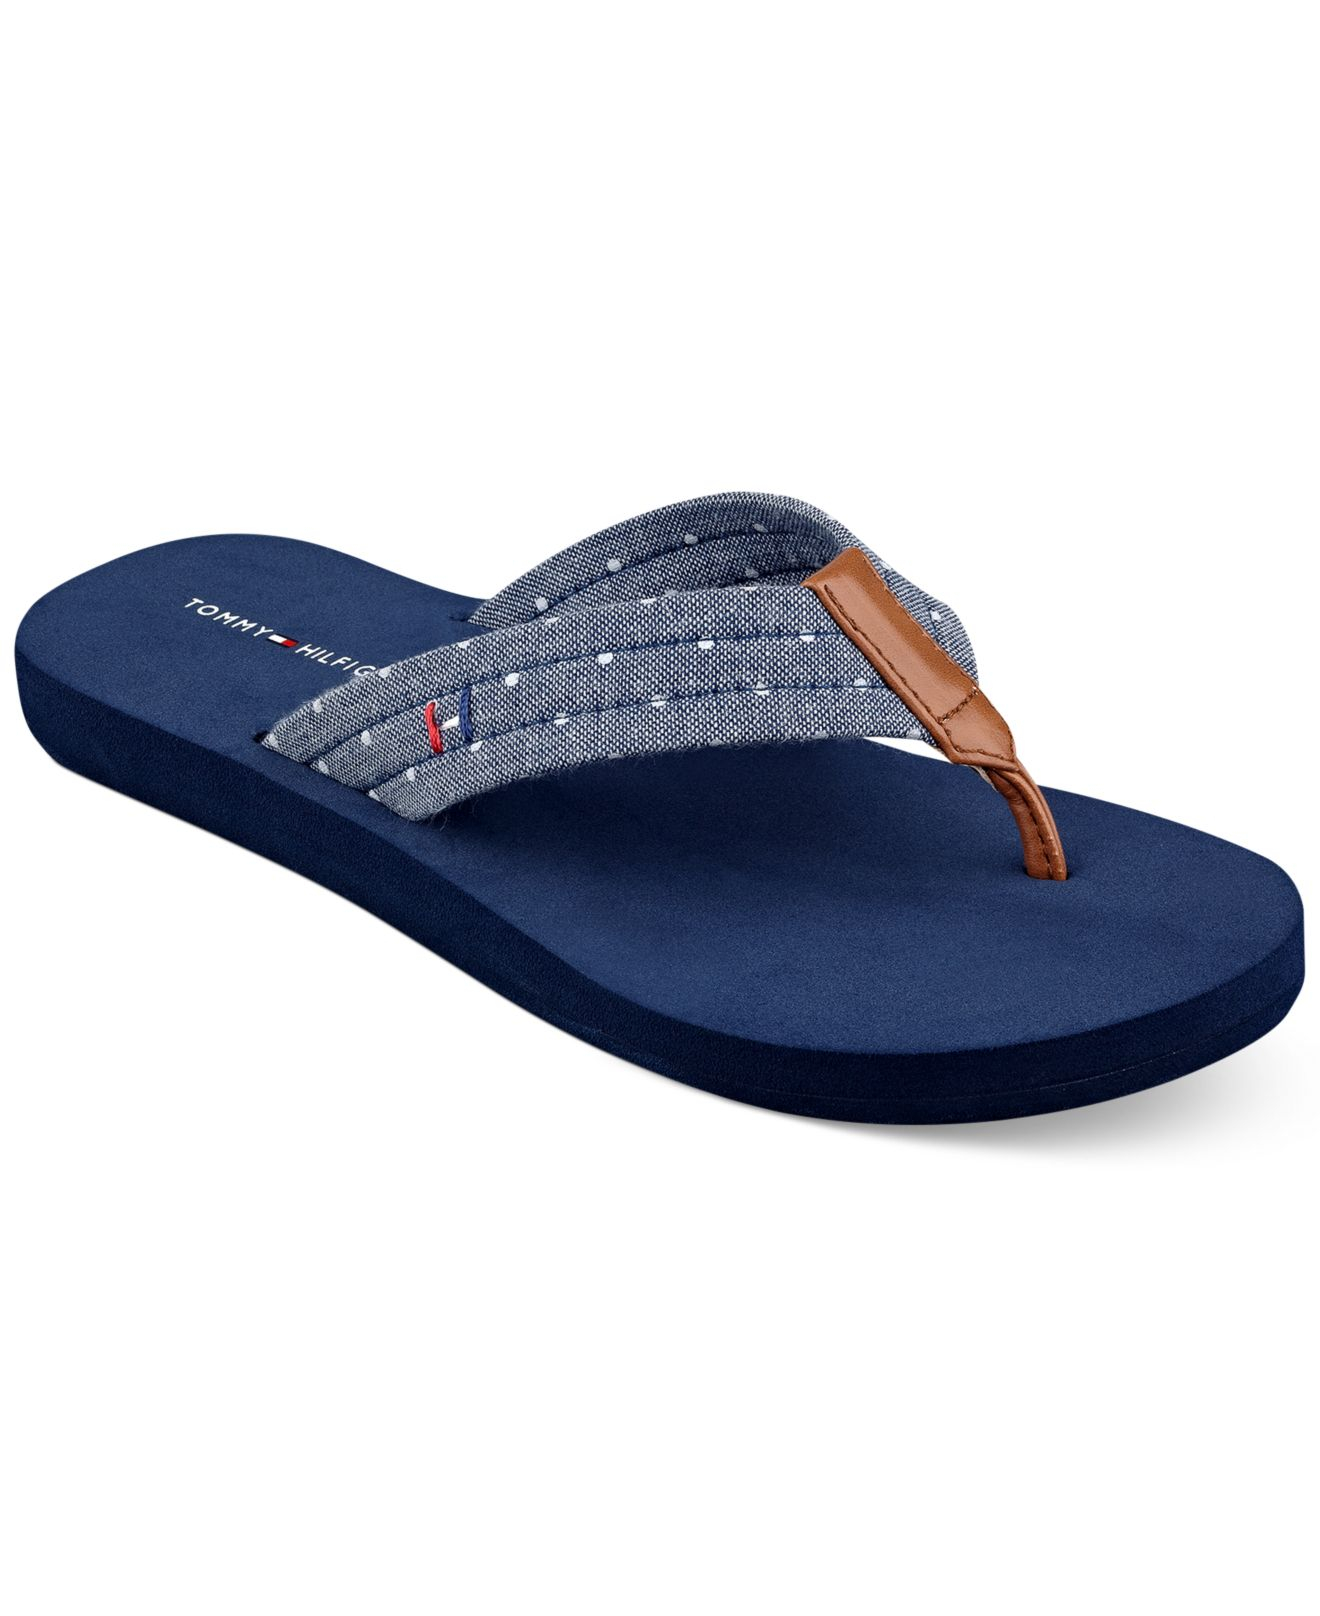 flip flops by tommy hilfiger man made upper round open toe flip. Black Bedroom Furniture Sets. Home Design Ideas